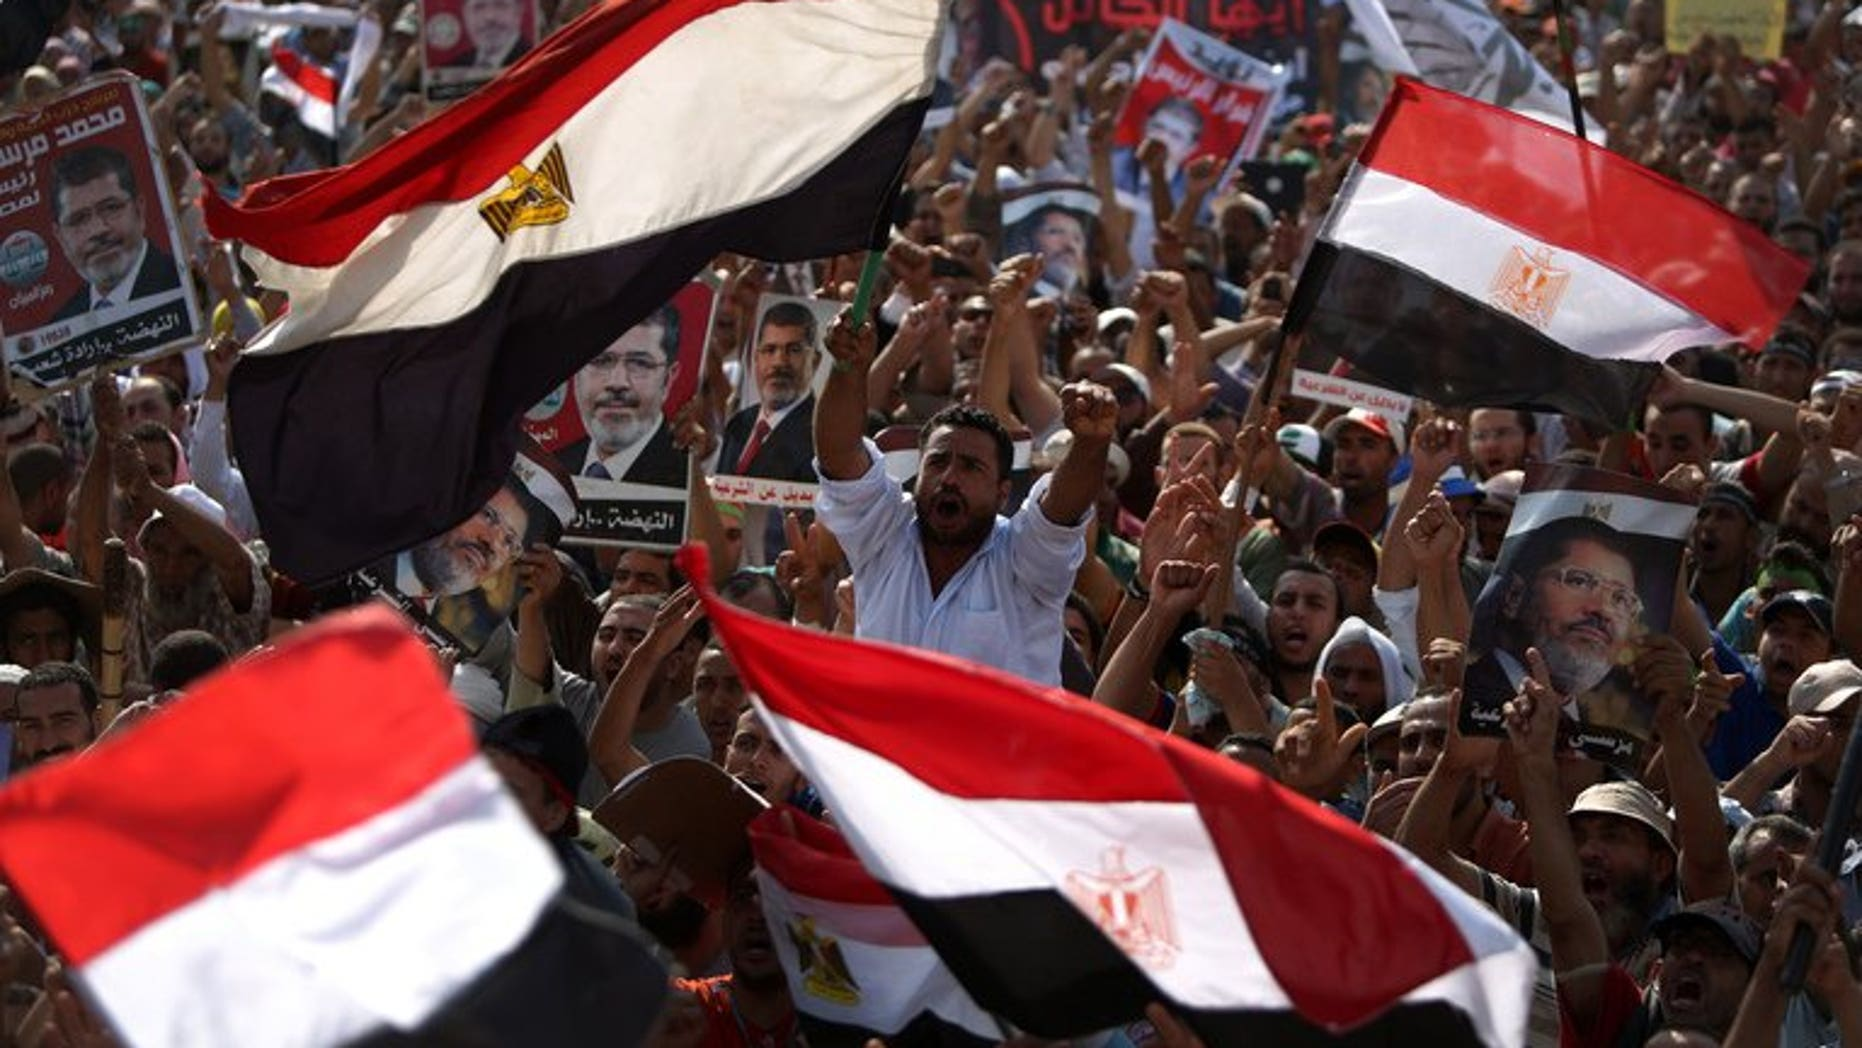 Egyptian supporters of deposed president Mohamed Morsi wave their national flag as they attend a rally in support of the former Islamist leader outside Cairo's Rabaa al-Adawiya mosque on July 8, 2013. The United Arab Emirates said it has offered Egypt an aid package of $3 billion, just days after it hailed the ouster of Islamist president Mohamed Morsi by the Egyptian army.